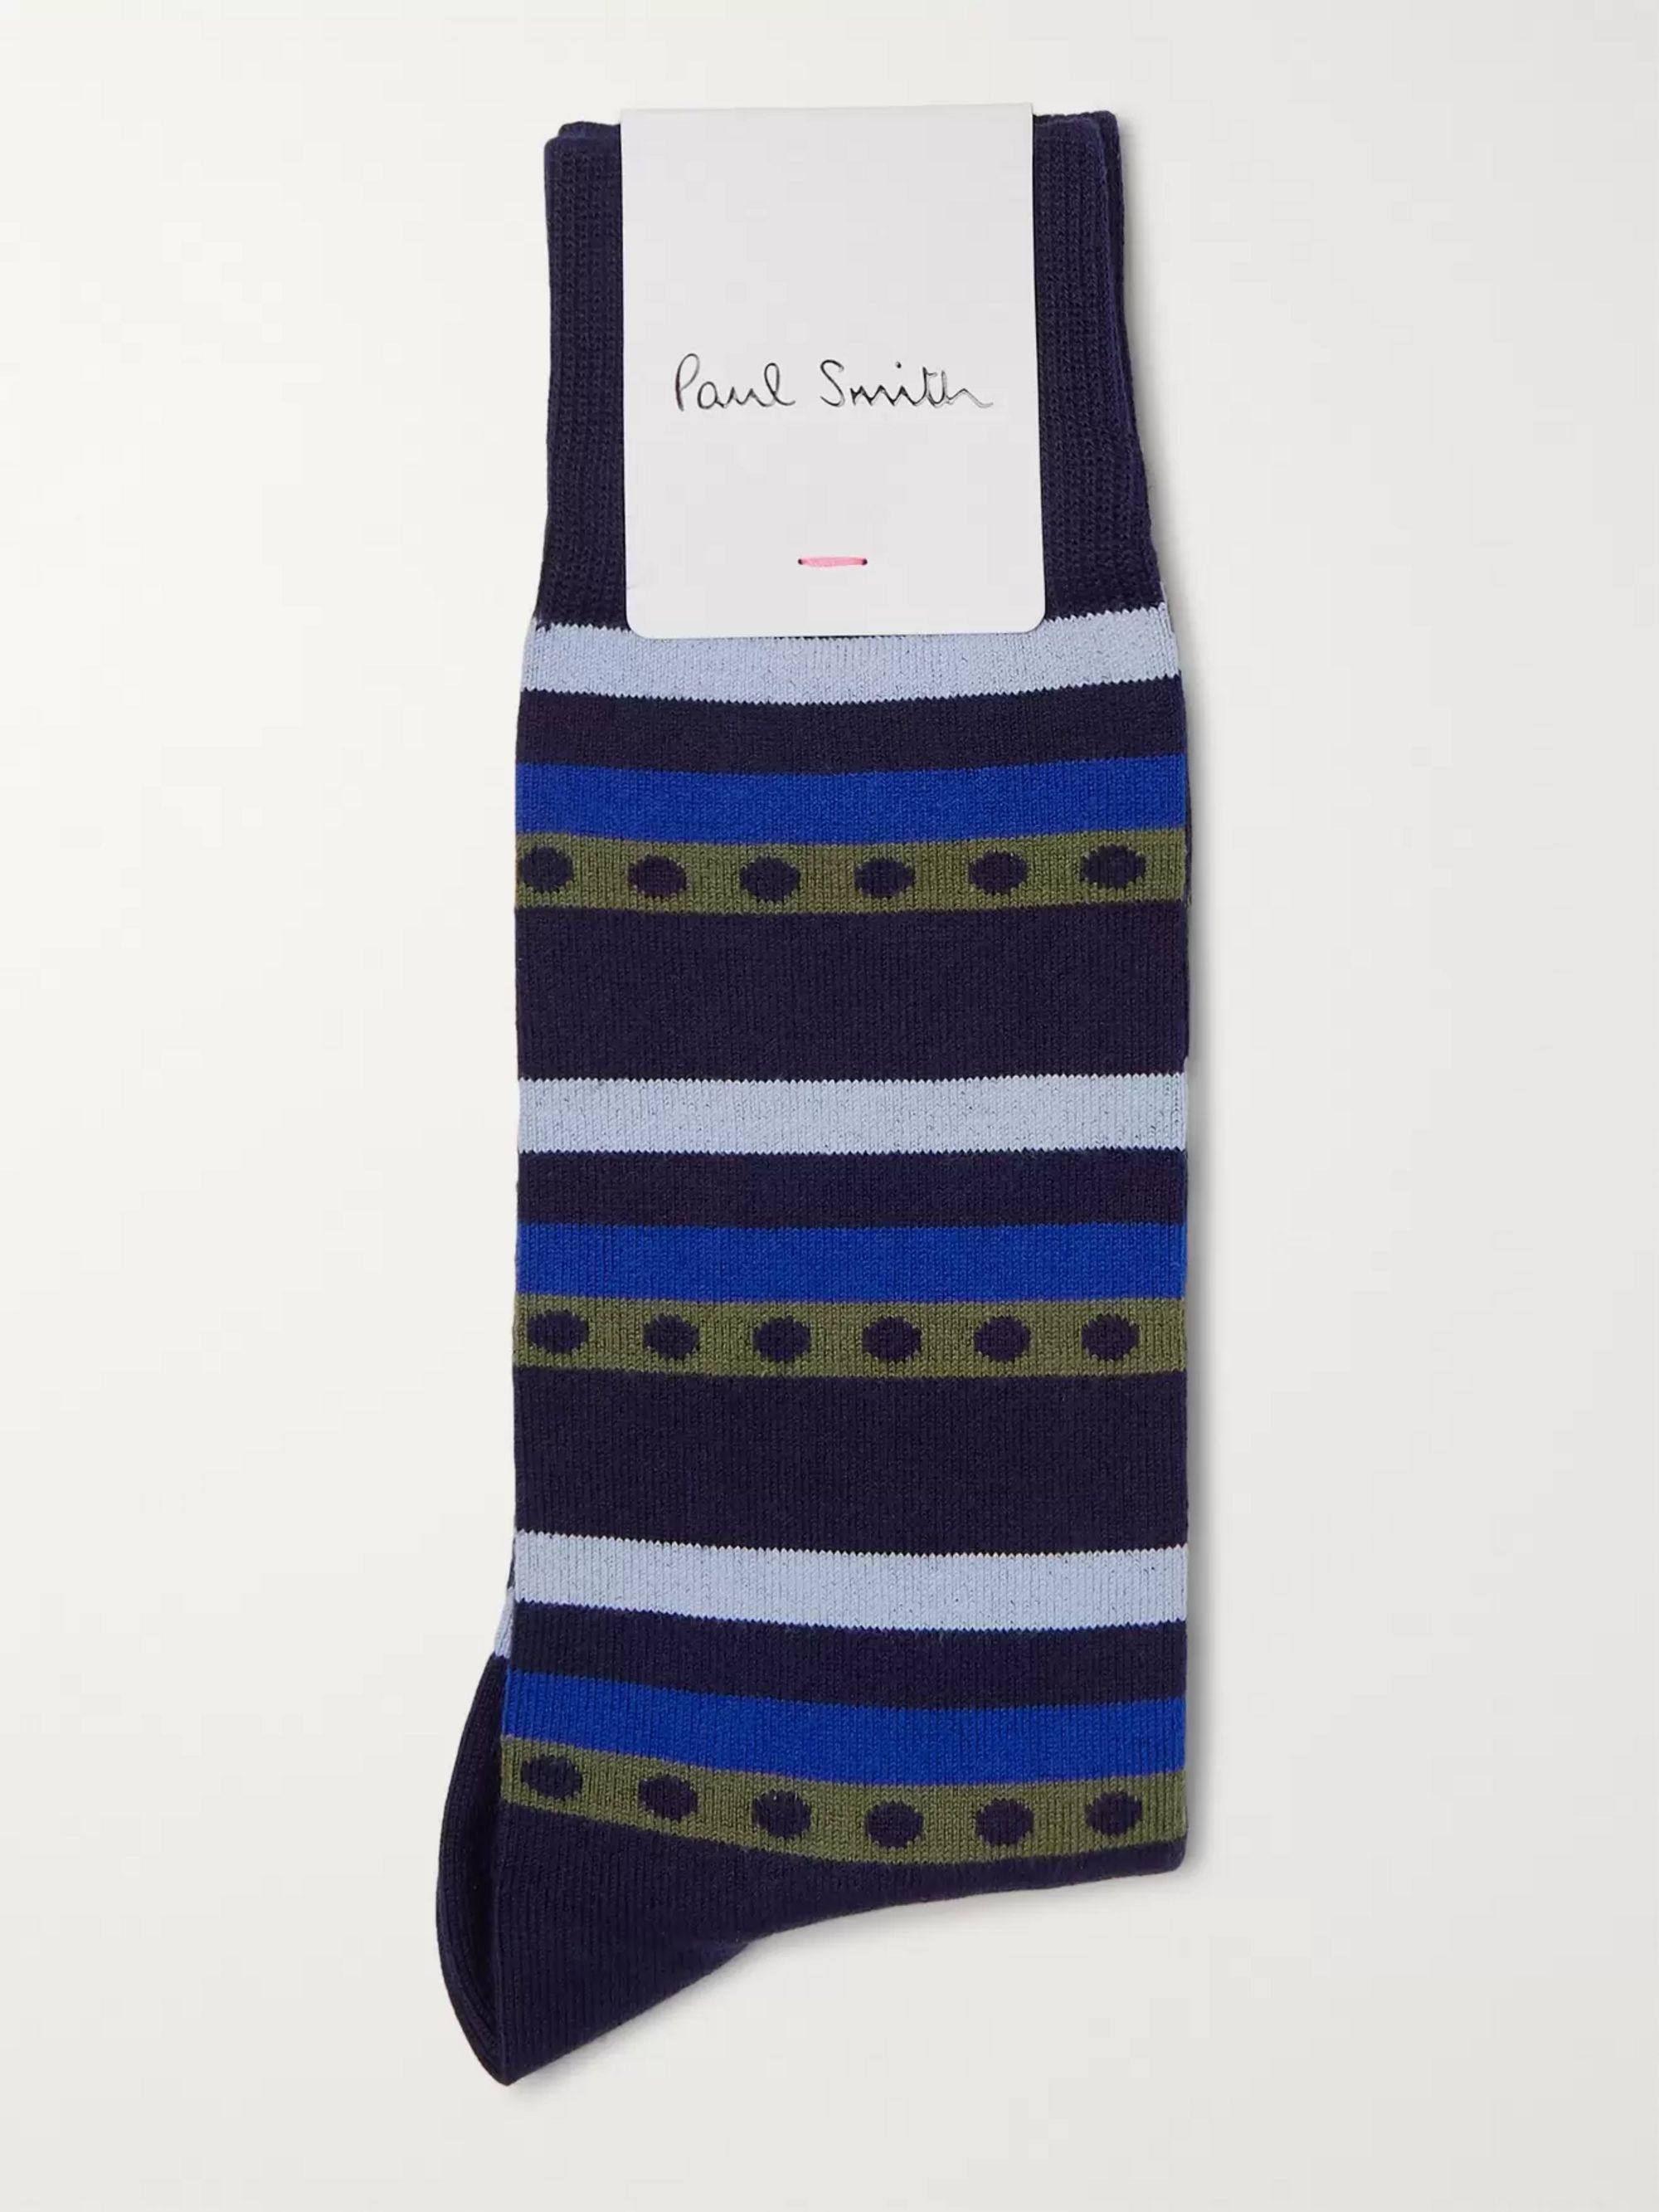 Paul Smith Striped Polka-Dot Stretch Cotton-Blend Socks